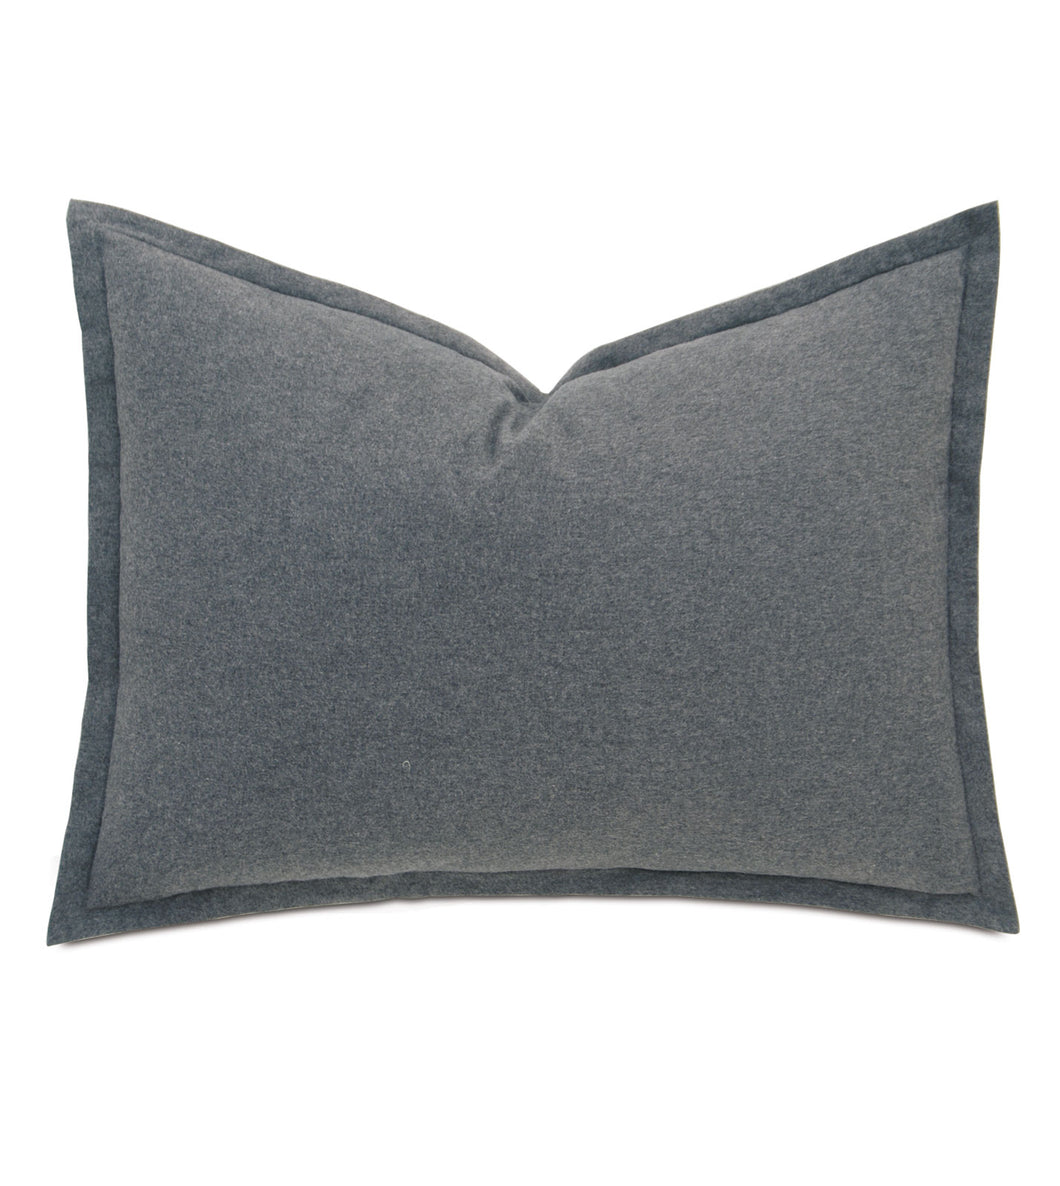 Landon Gravel Solid Cotton  Standard Sham in Grey 20